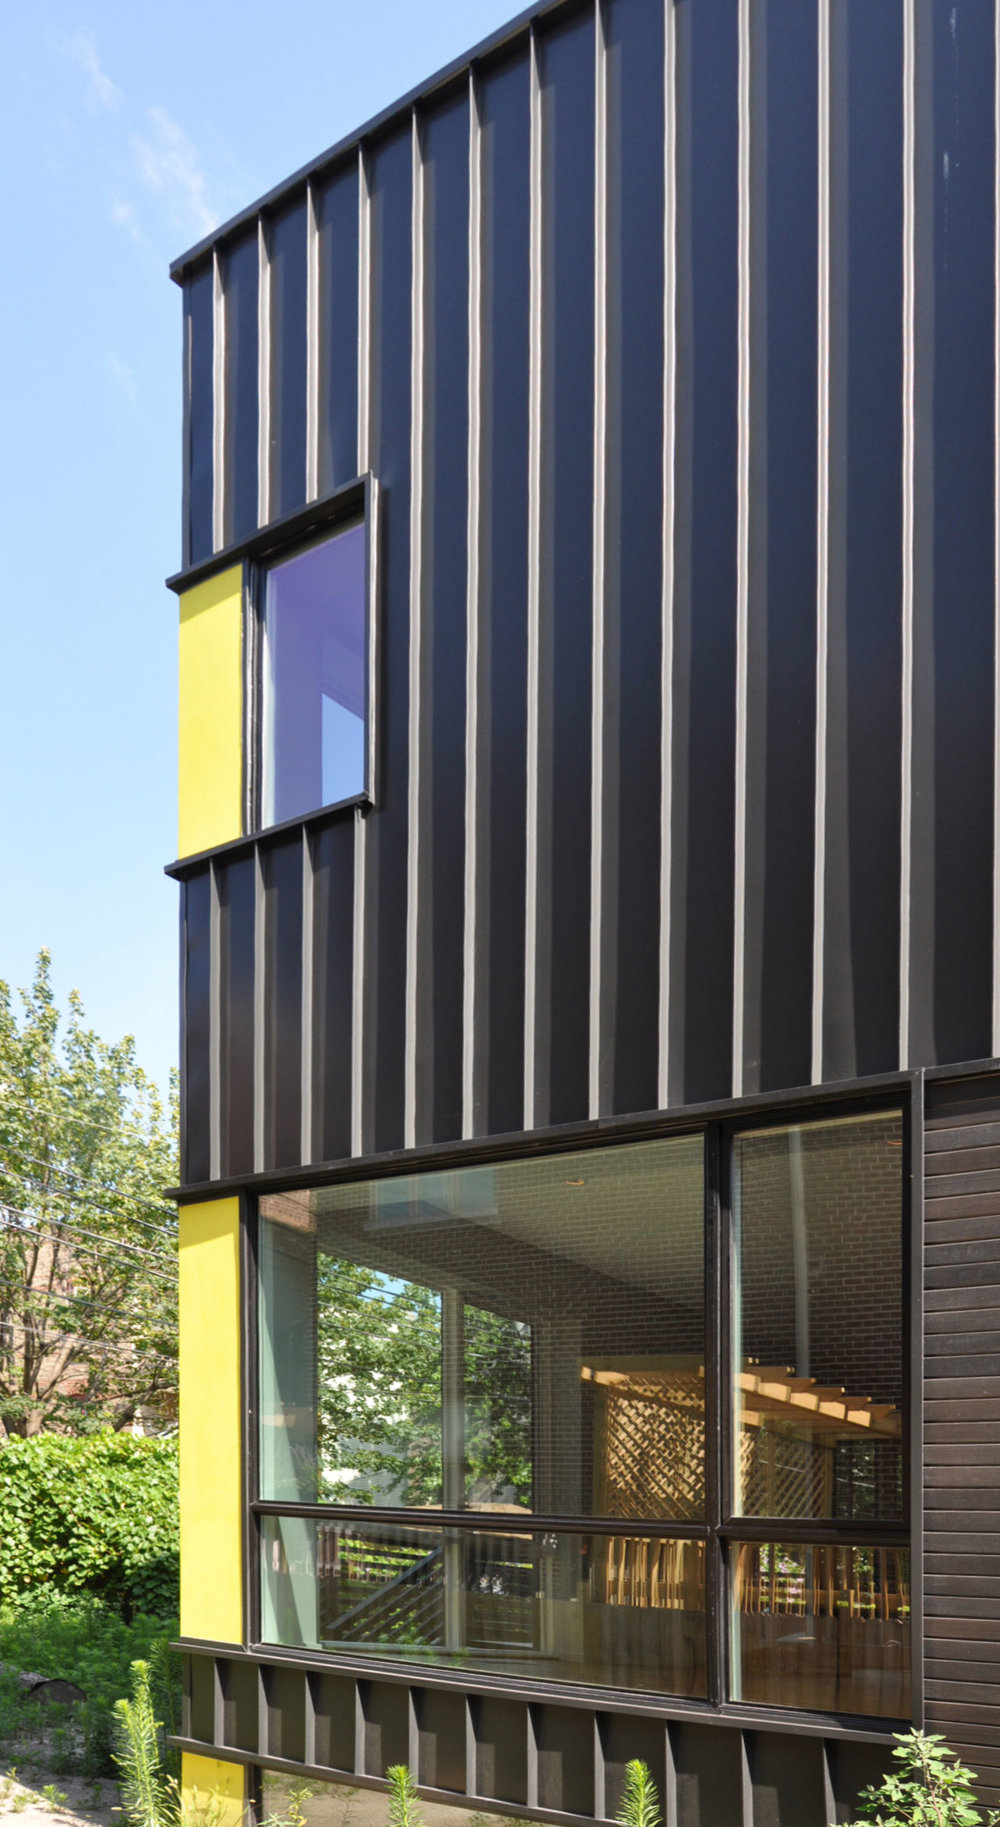 Bright yellow corner panels add color to the black standing seam metal siding